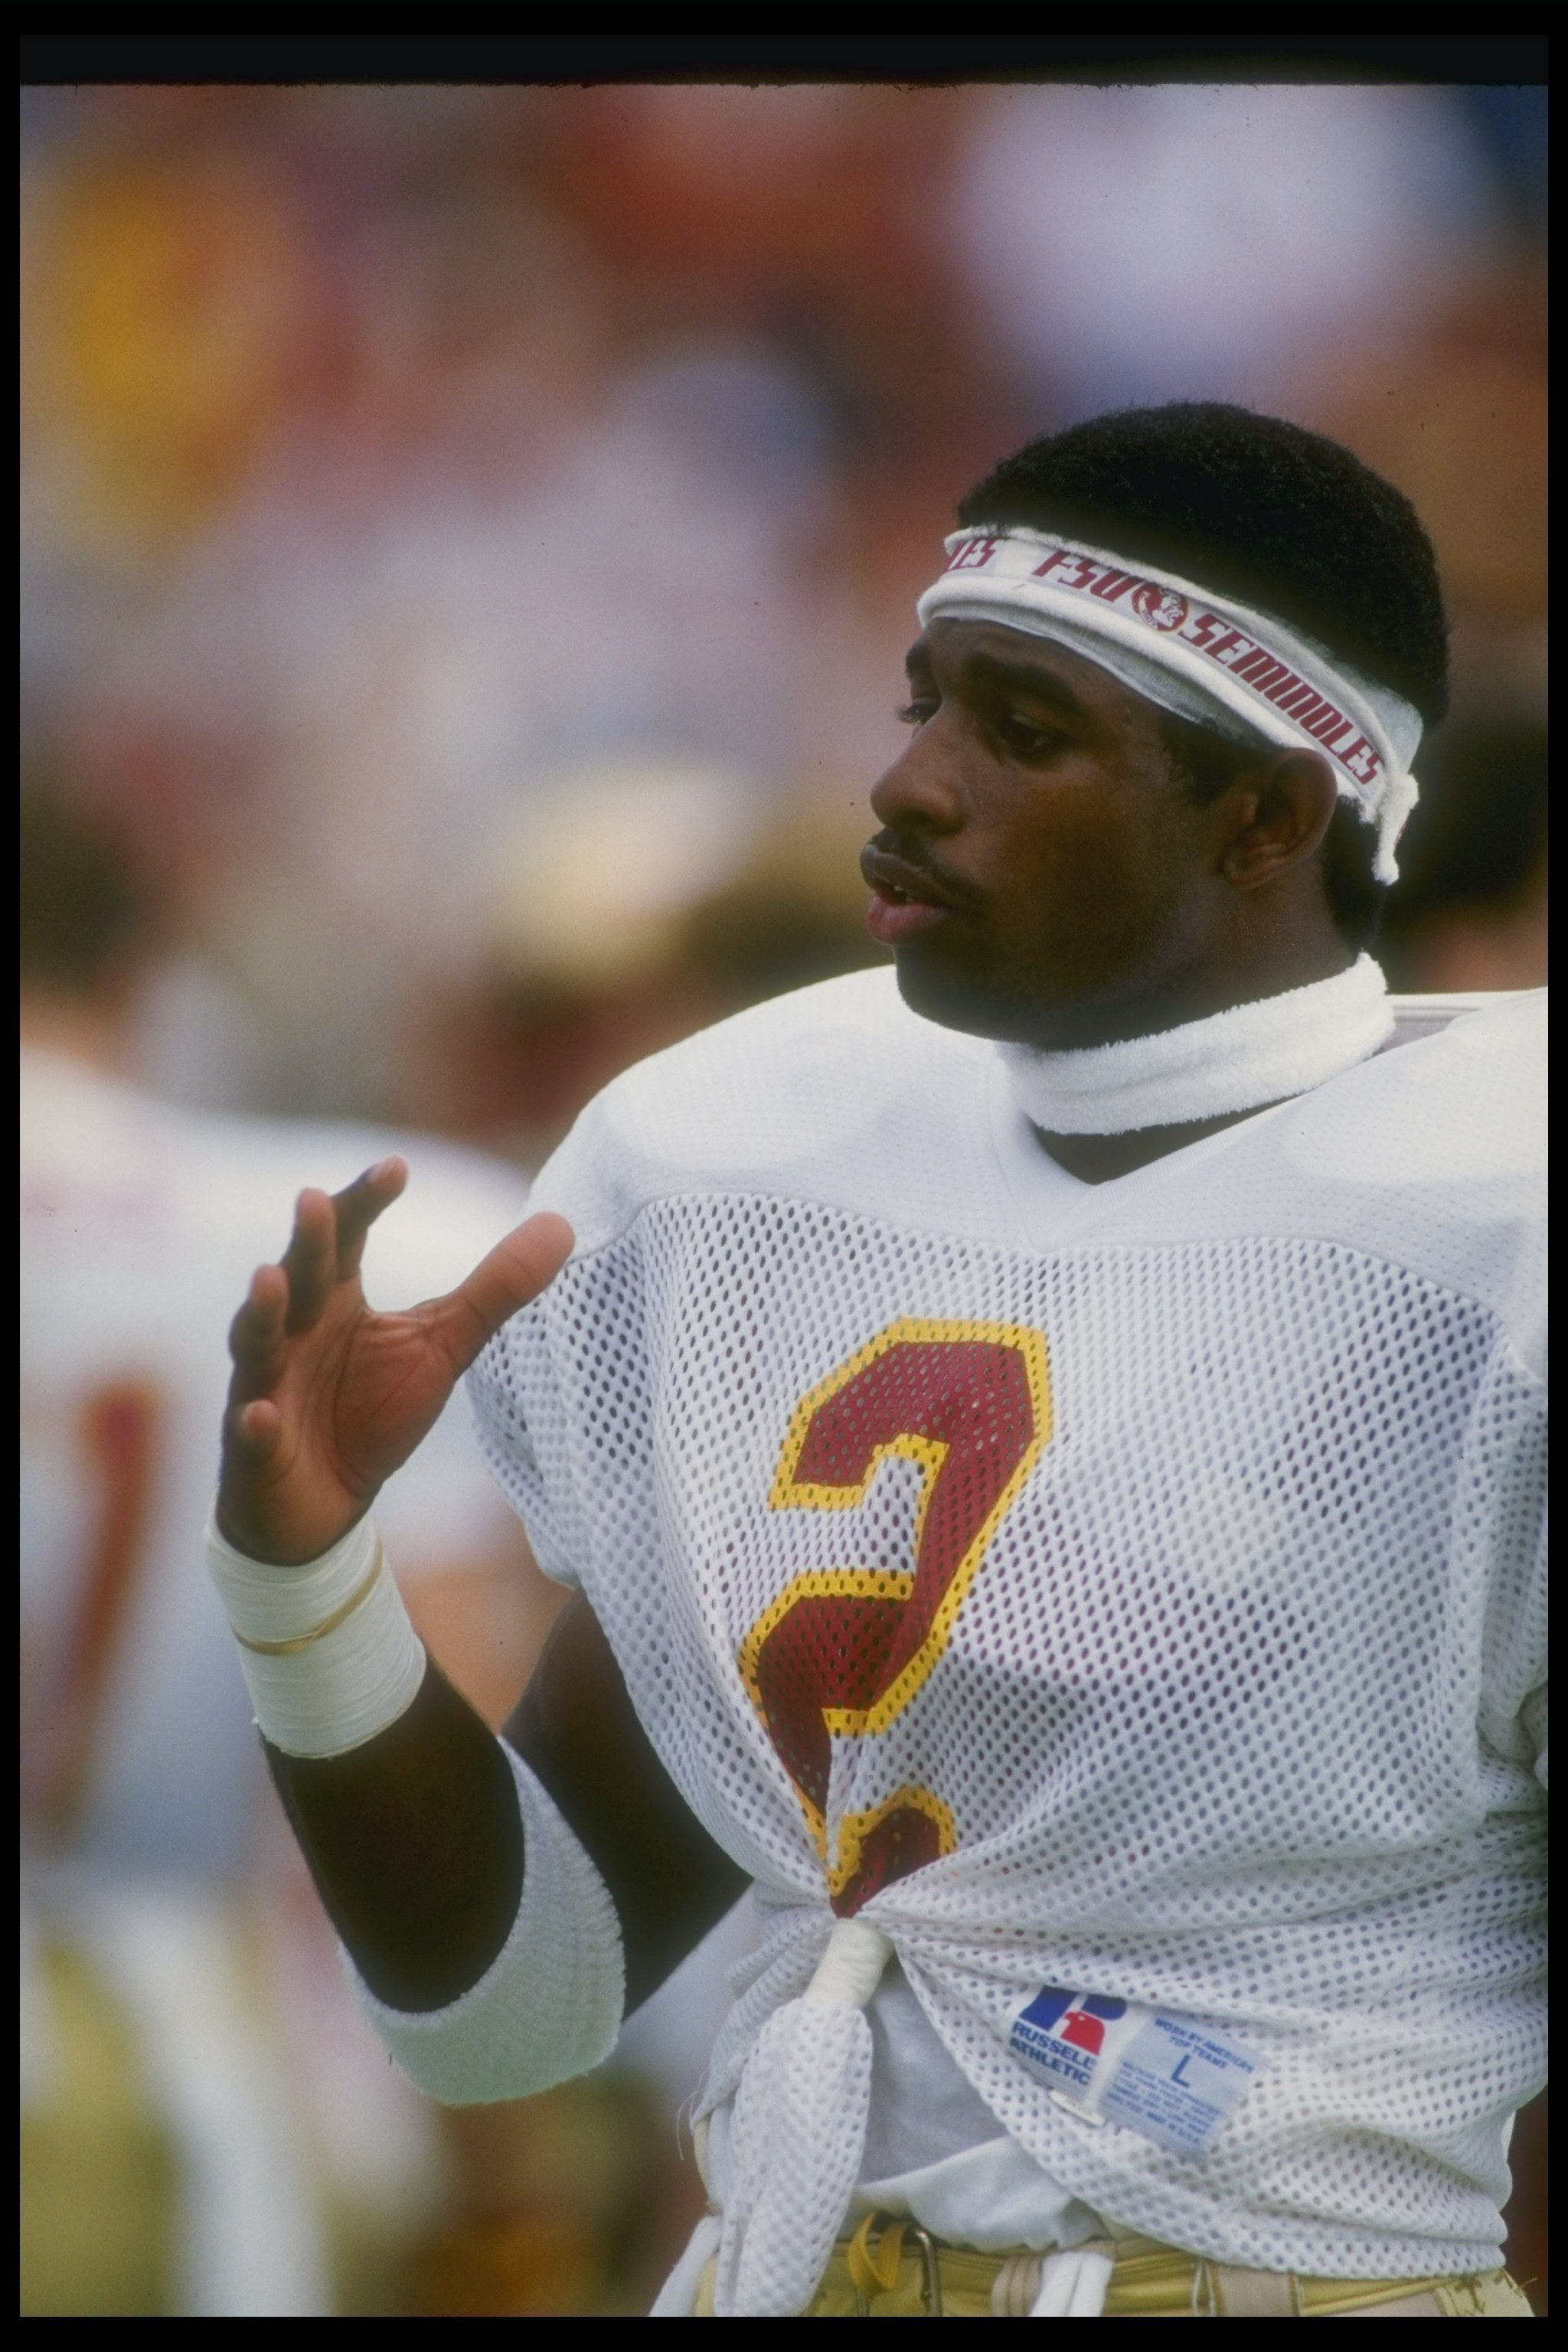 1987  Defensive back Deion Sanders of the Florida State Seminoles looks on  during a game ce178d1d4